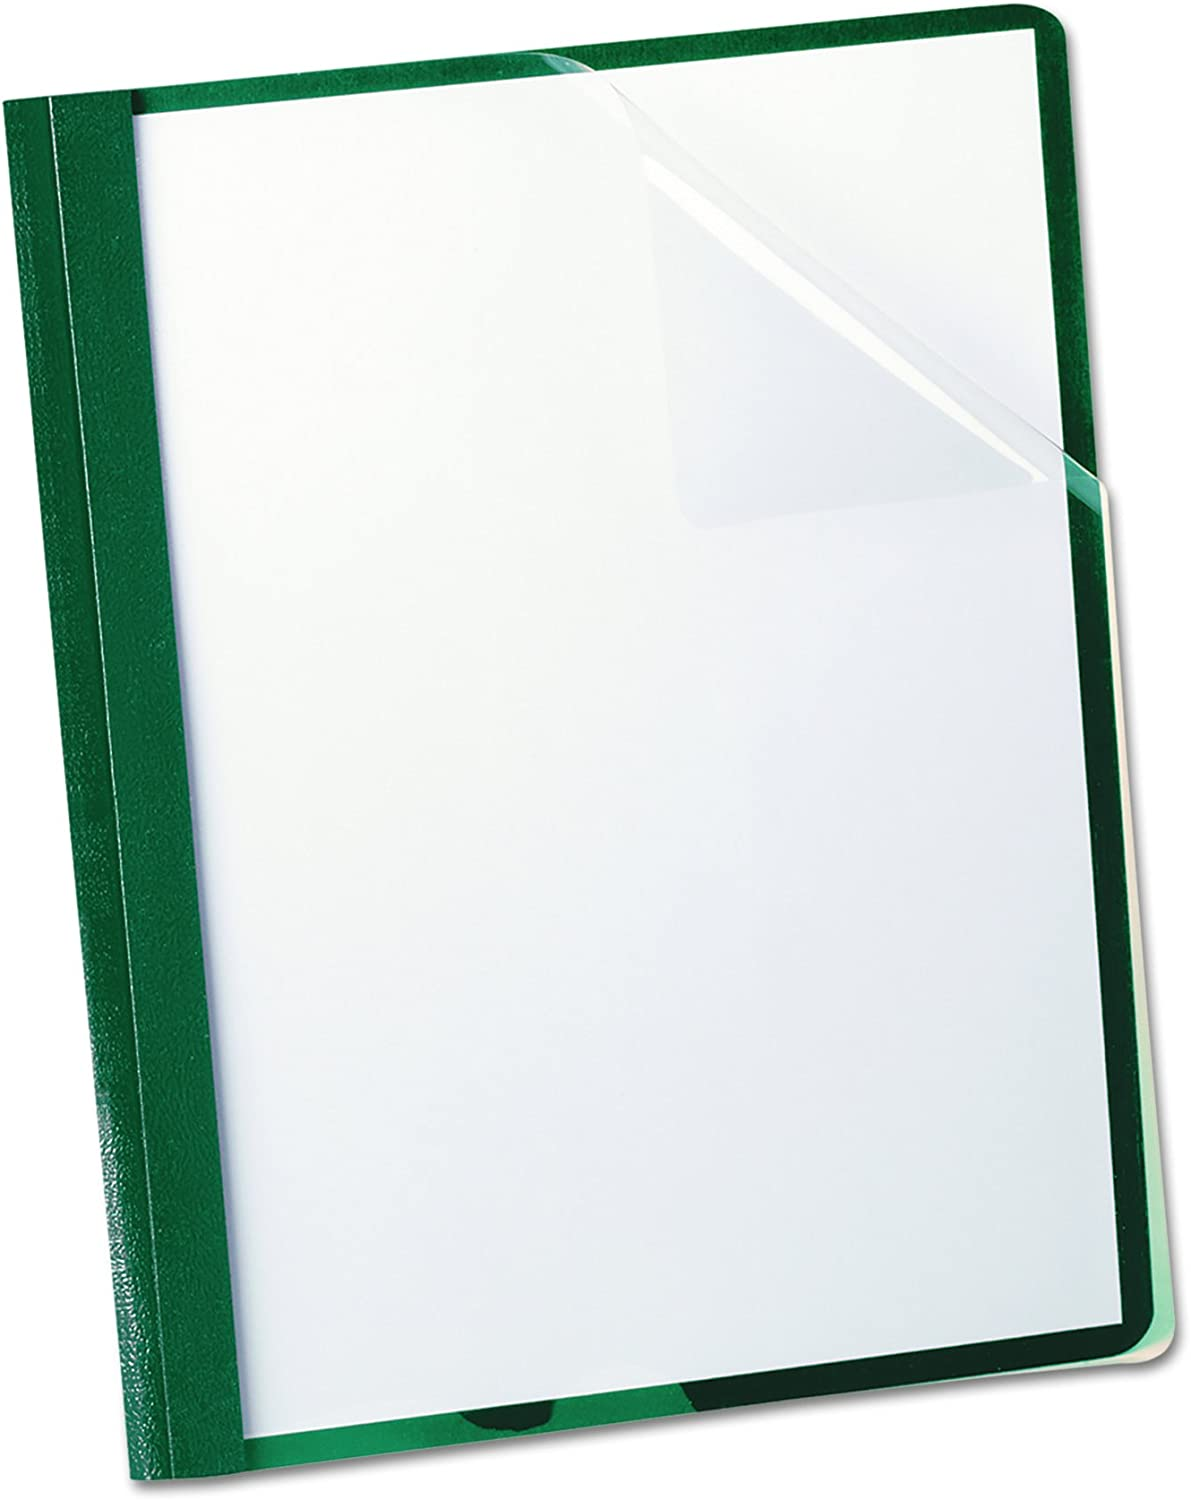 B0006HXBPS Oxford Clear Front Report Covers, Letter Size, Hunter Green, 25 per Box (55856) 71VC%2BGjn5ZL